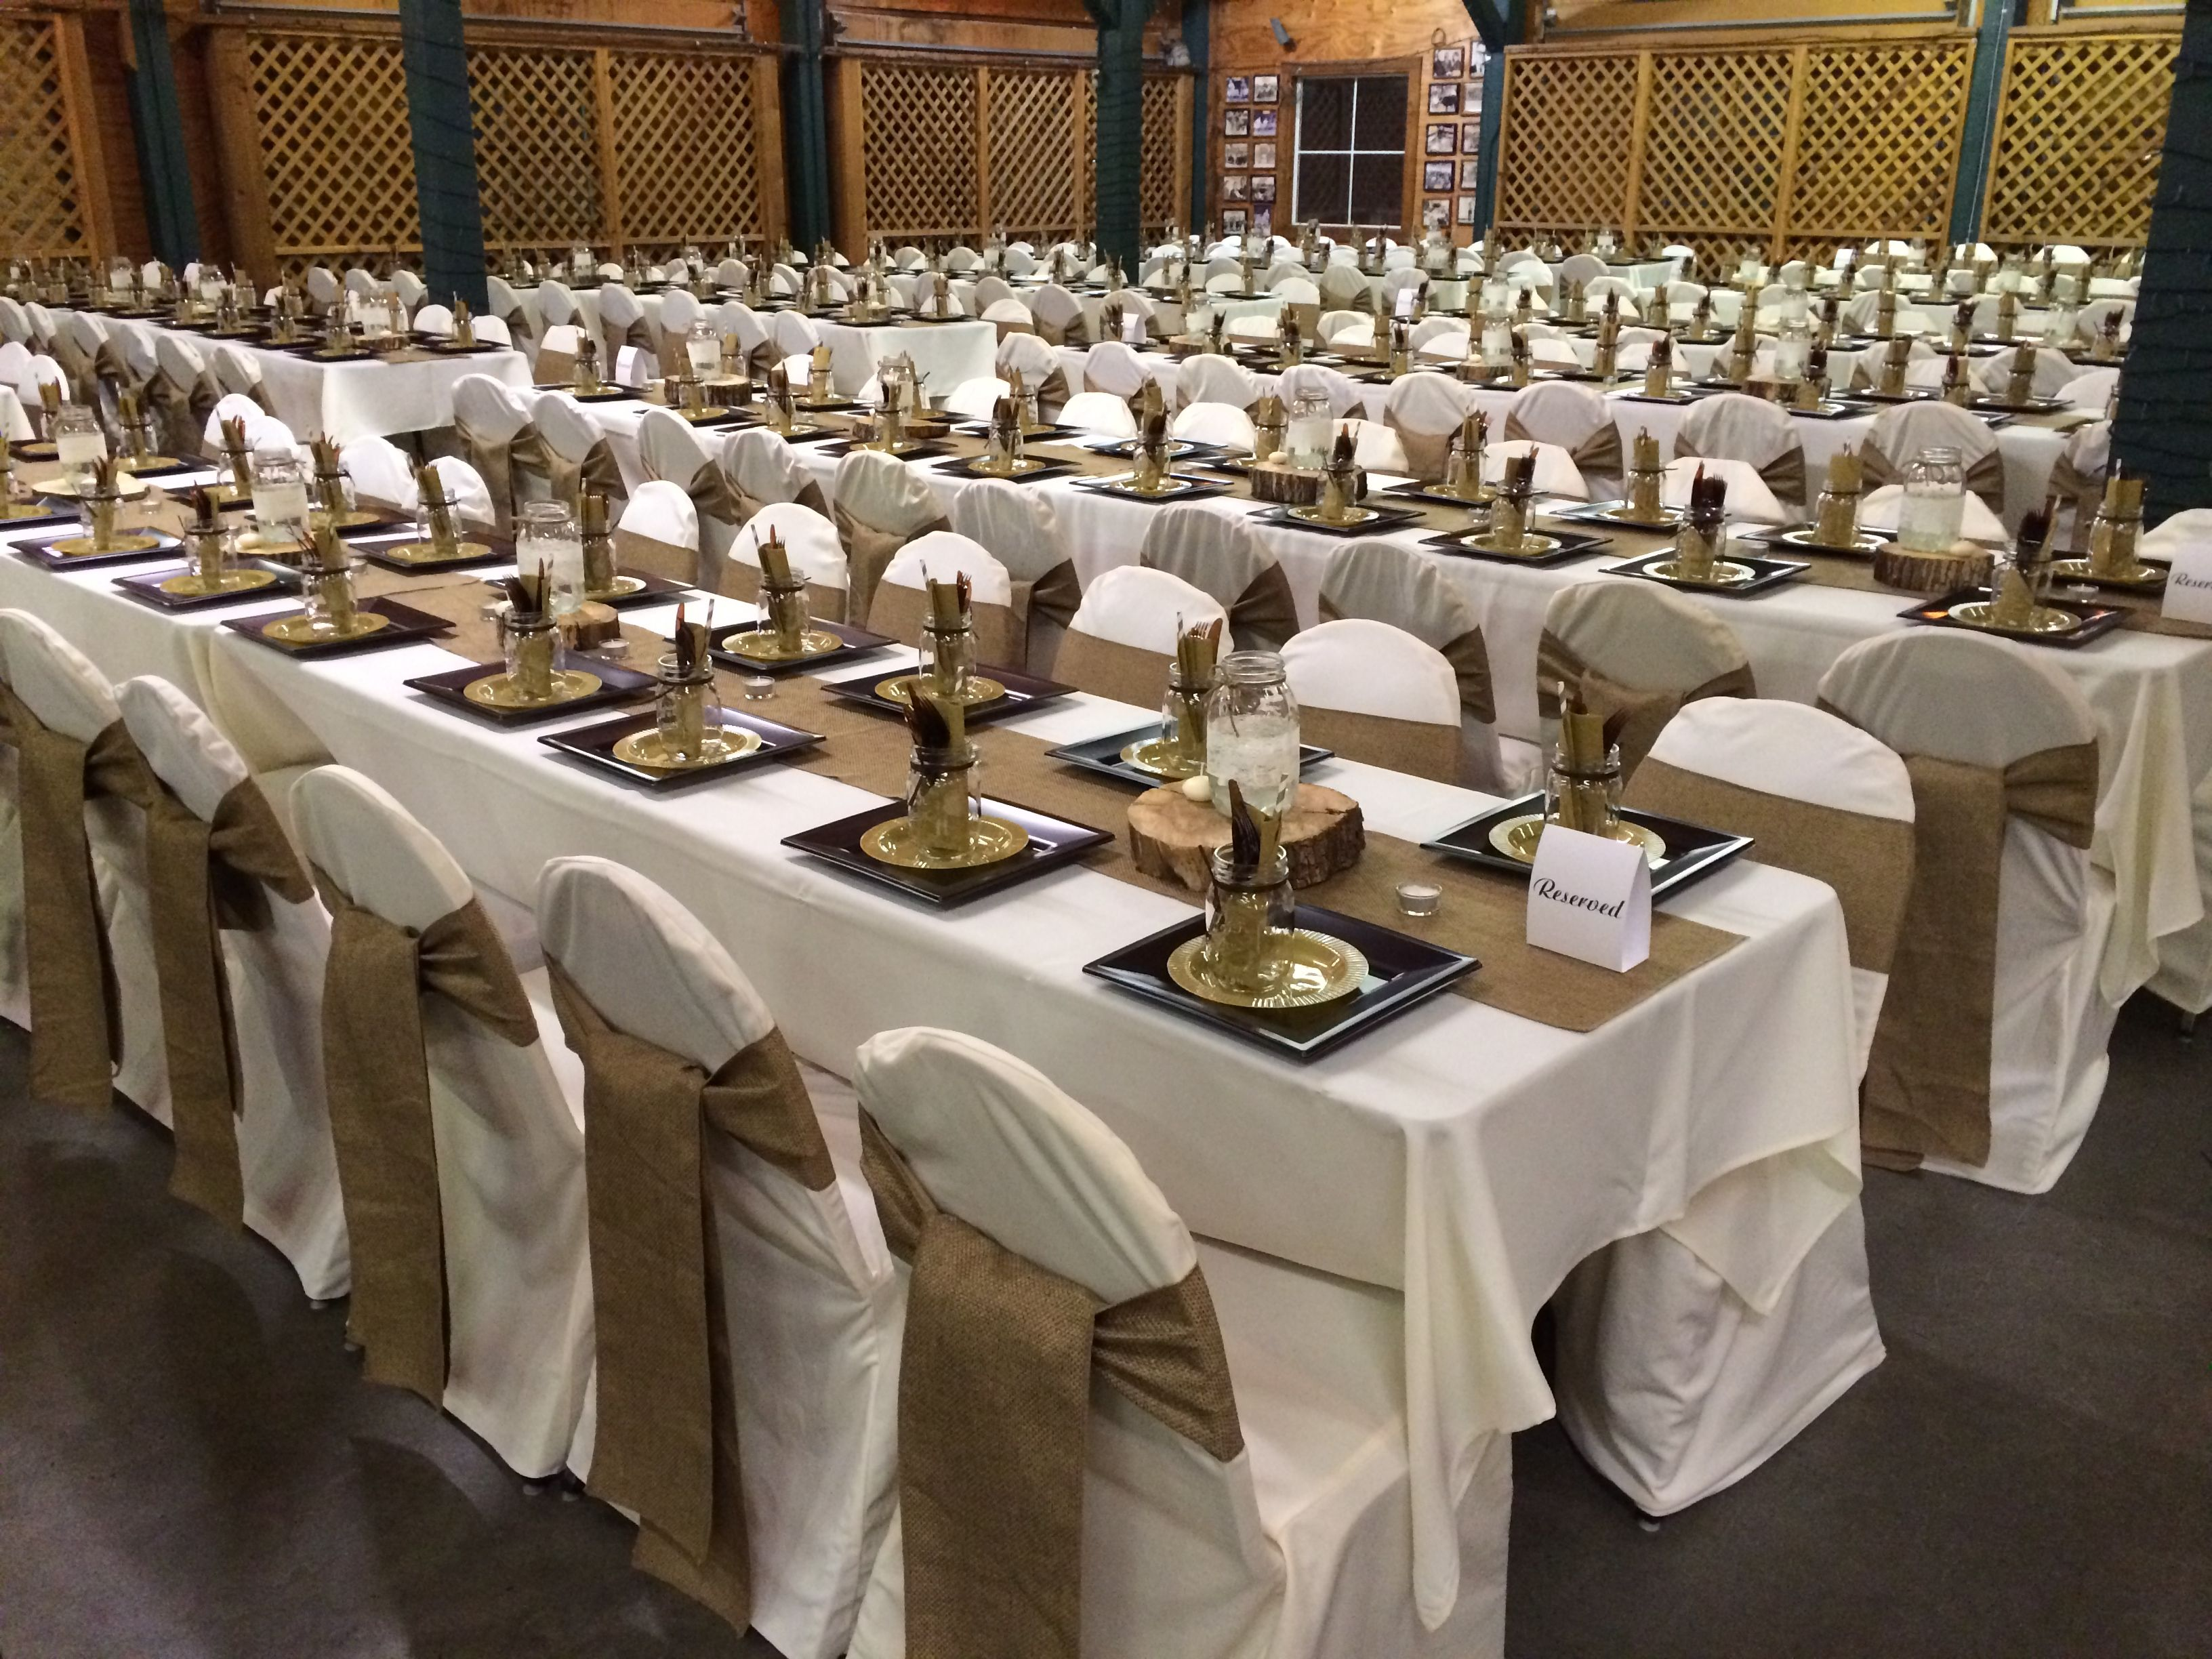 Ivory Chair Covers With Gold Sash Wicker Arm Burlap Table Runners And Sashes Tablecloths